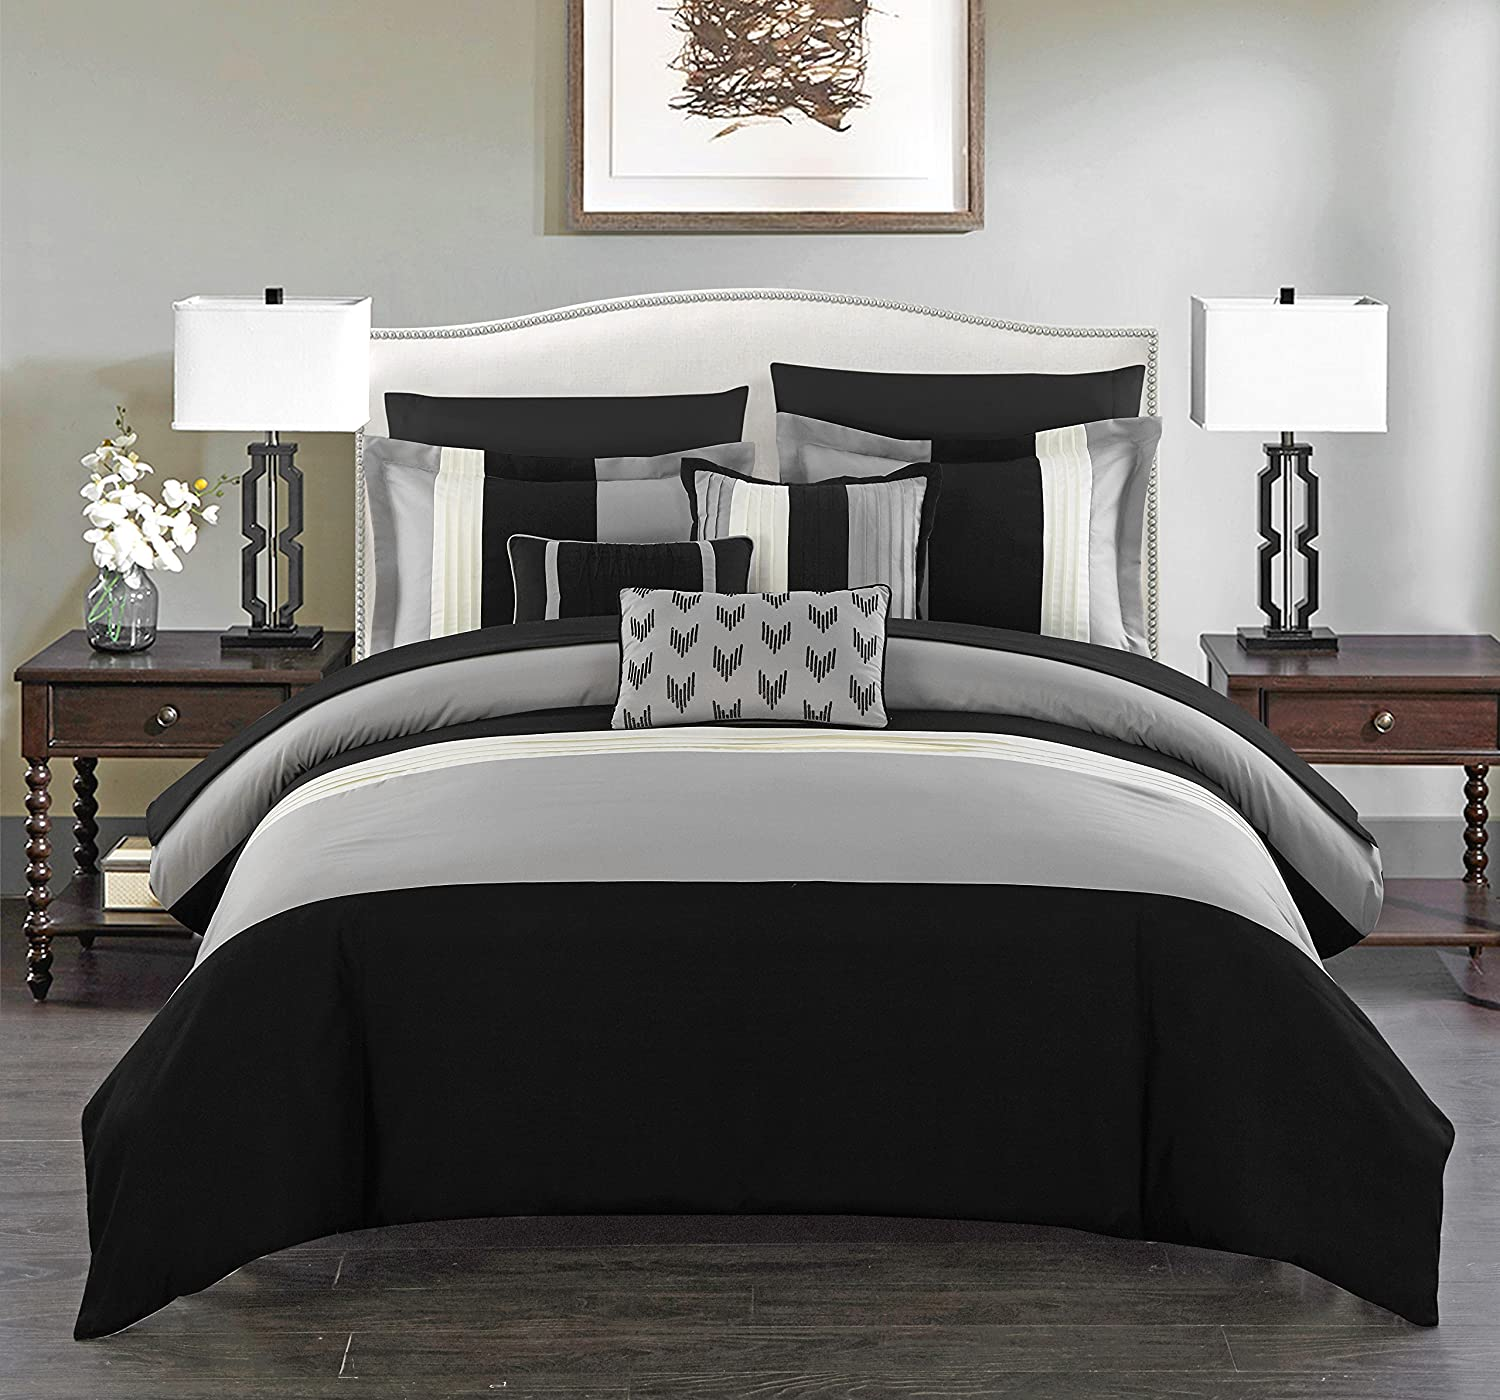 Chic Home Ayelet 10 Piece Comforter Set Color Block Ruffled Bag Bedding-Decorative Pillows Shams Included, Queen, Black